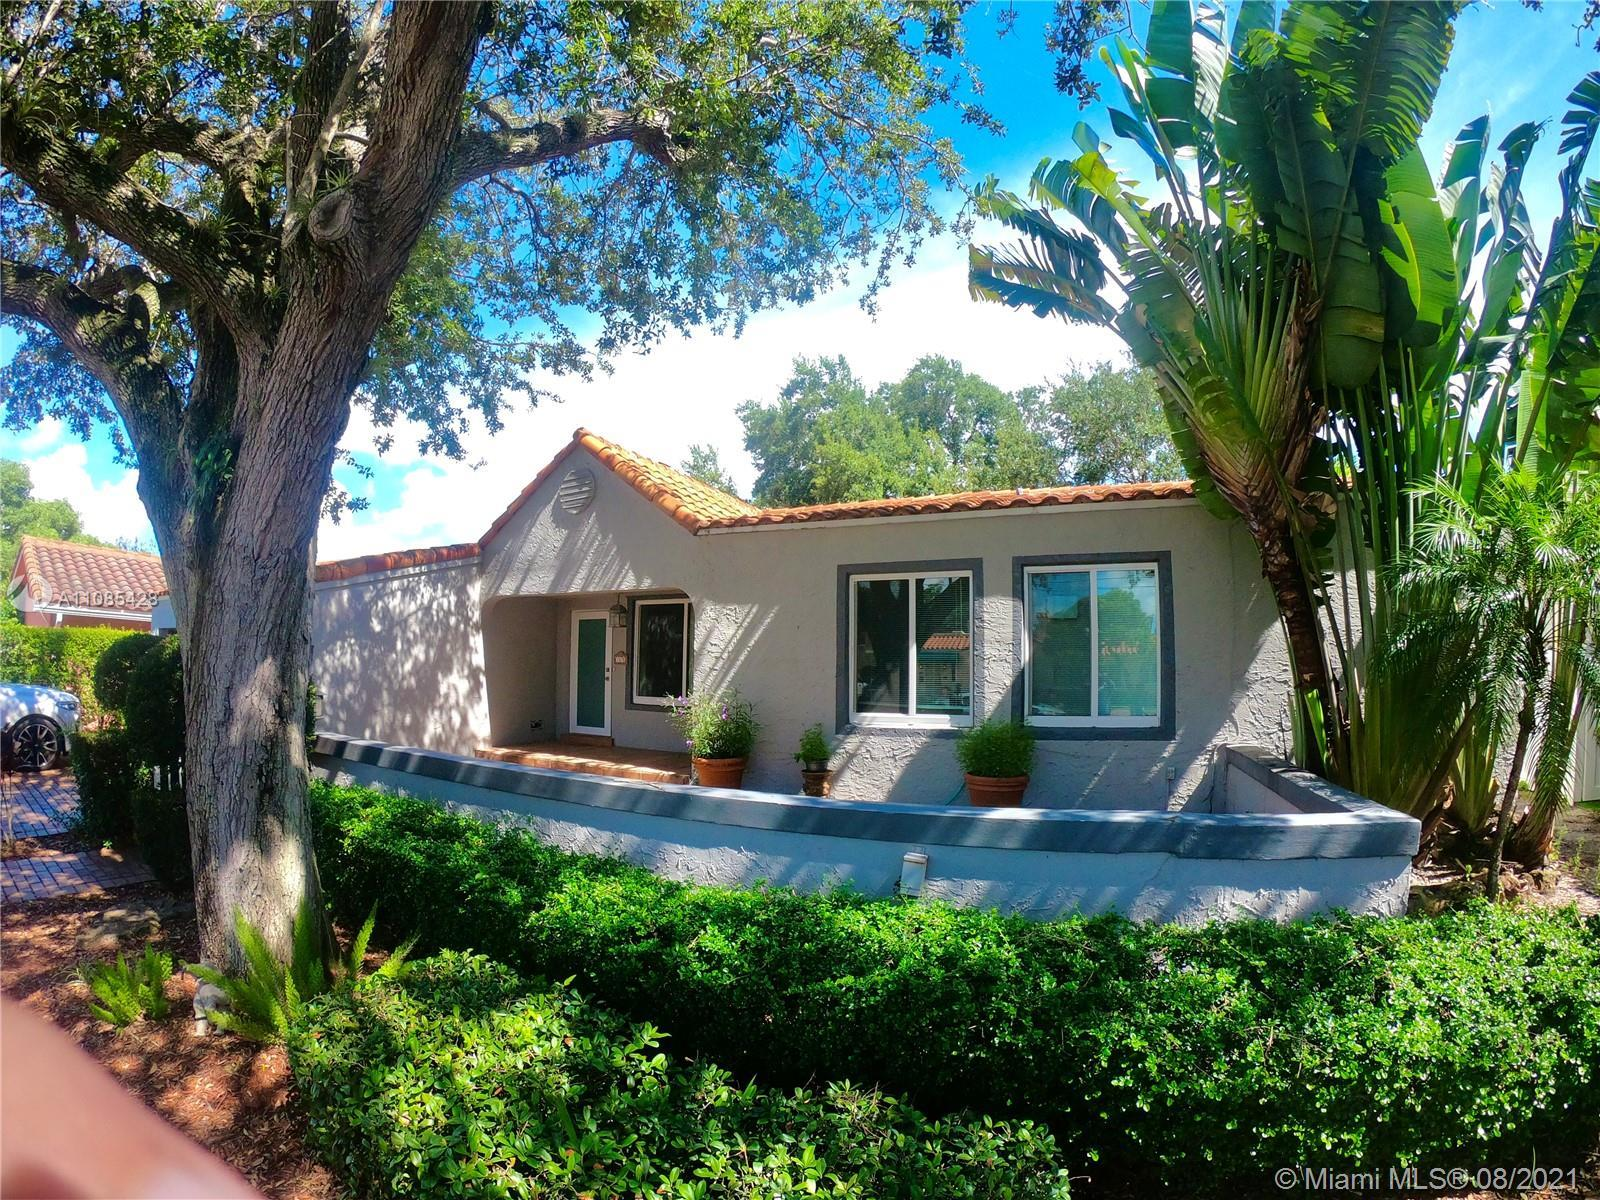 Attention investors and Home Improvers ! Rio Vista Large 3 bed 3 1/2 bathroom with oversize lot. Wil